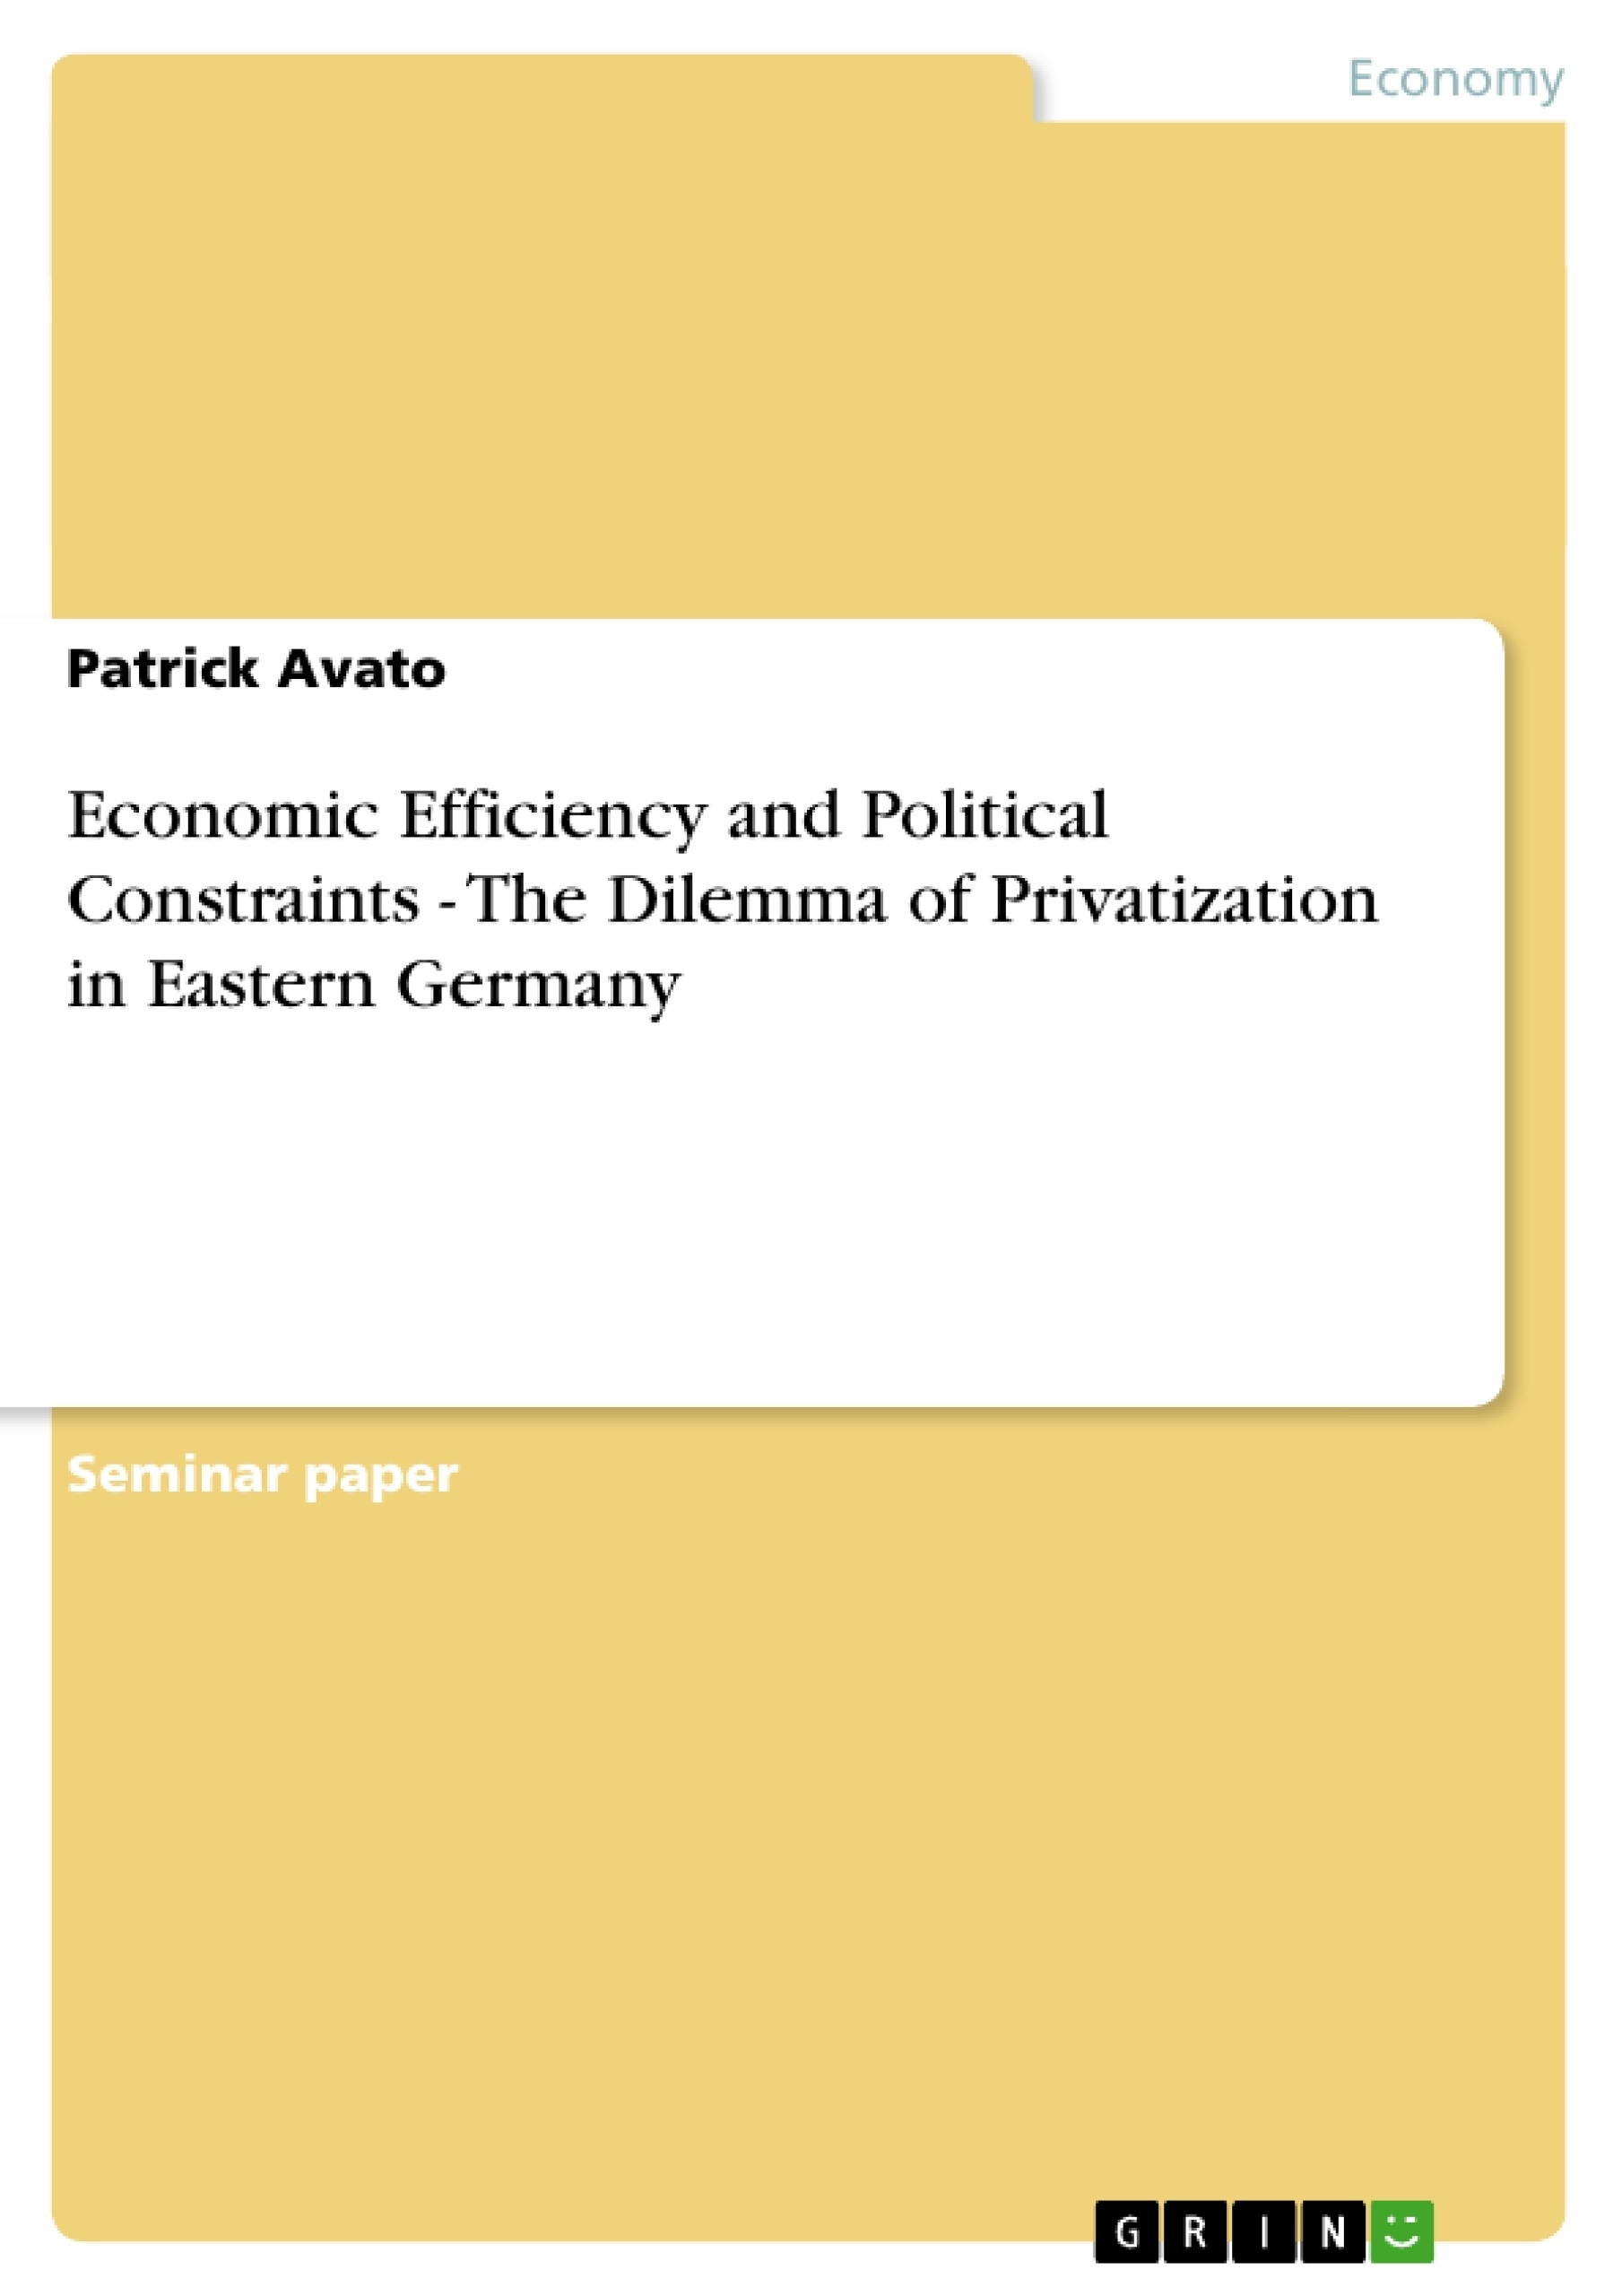 Title: Economic Efficiency and Political Constraints - The Dilemma of Privatization in Eastern Germany